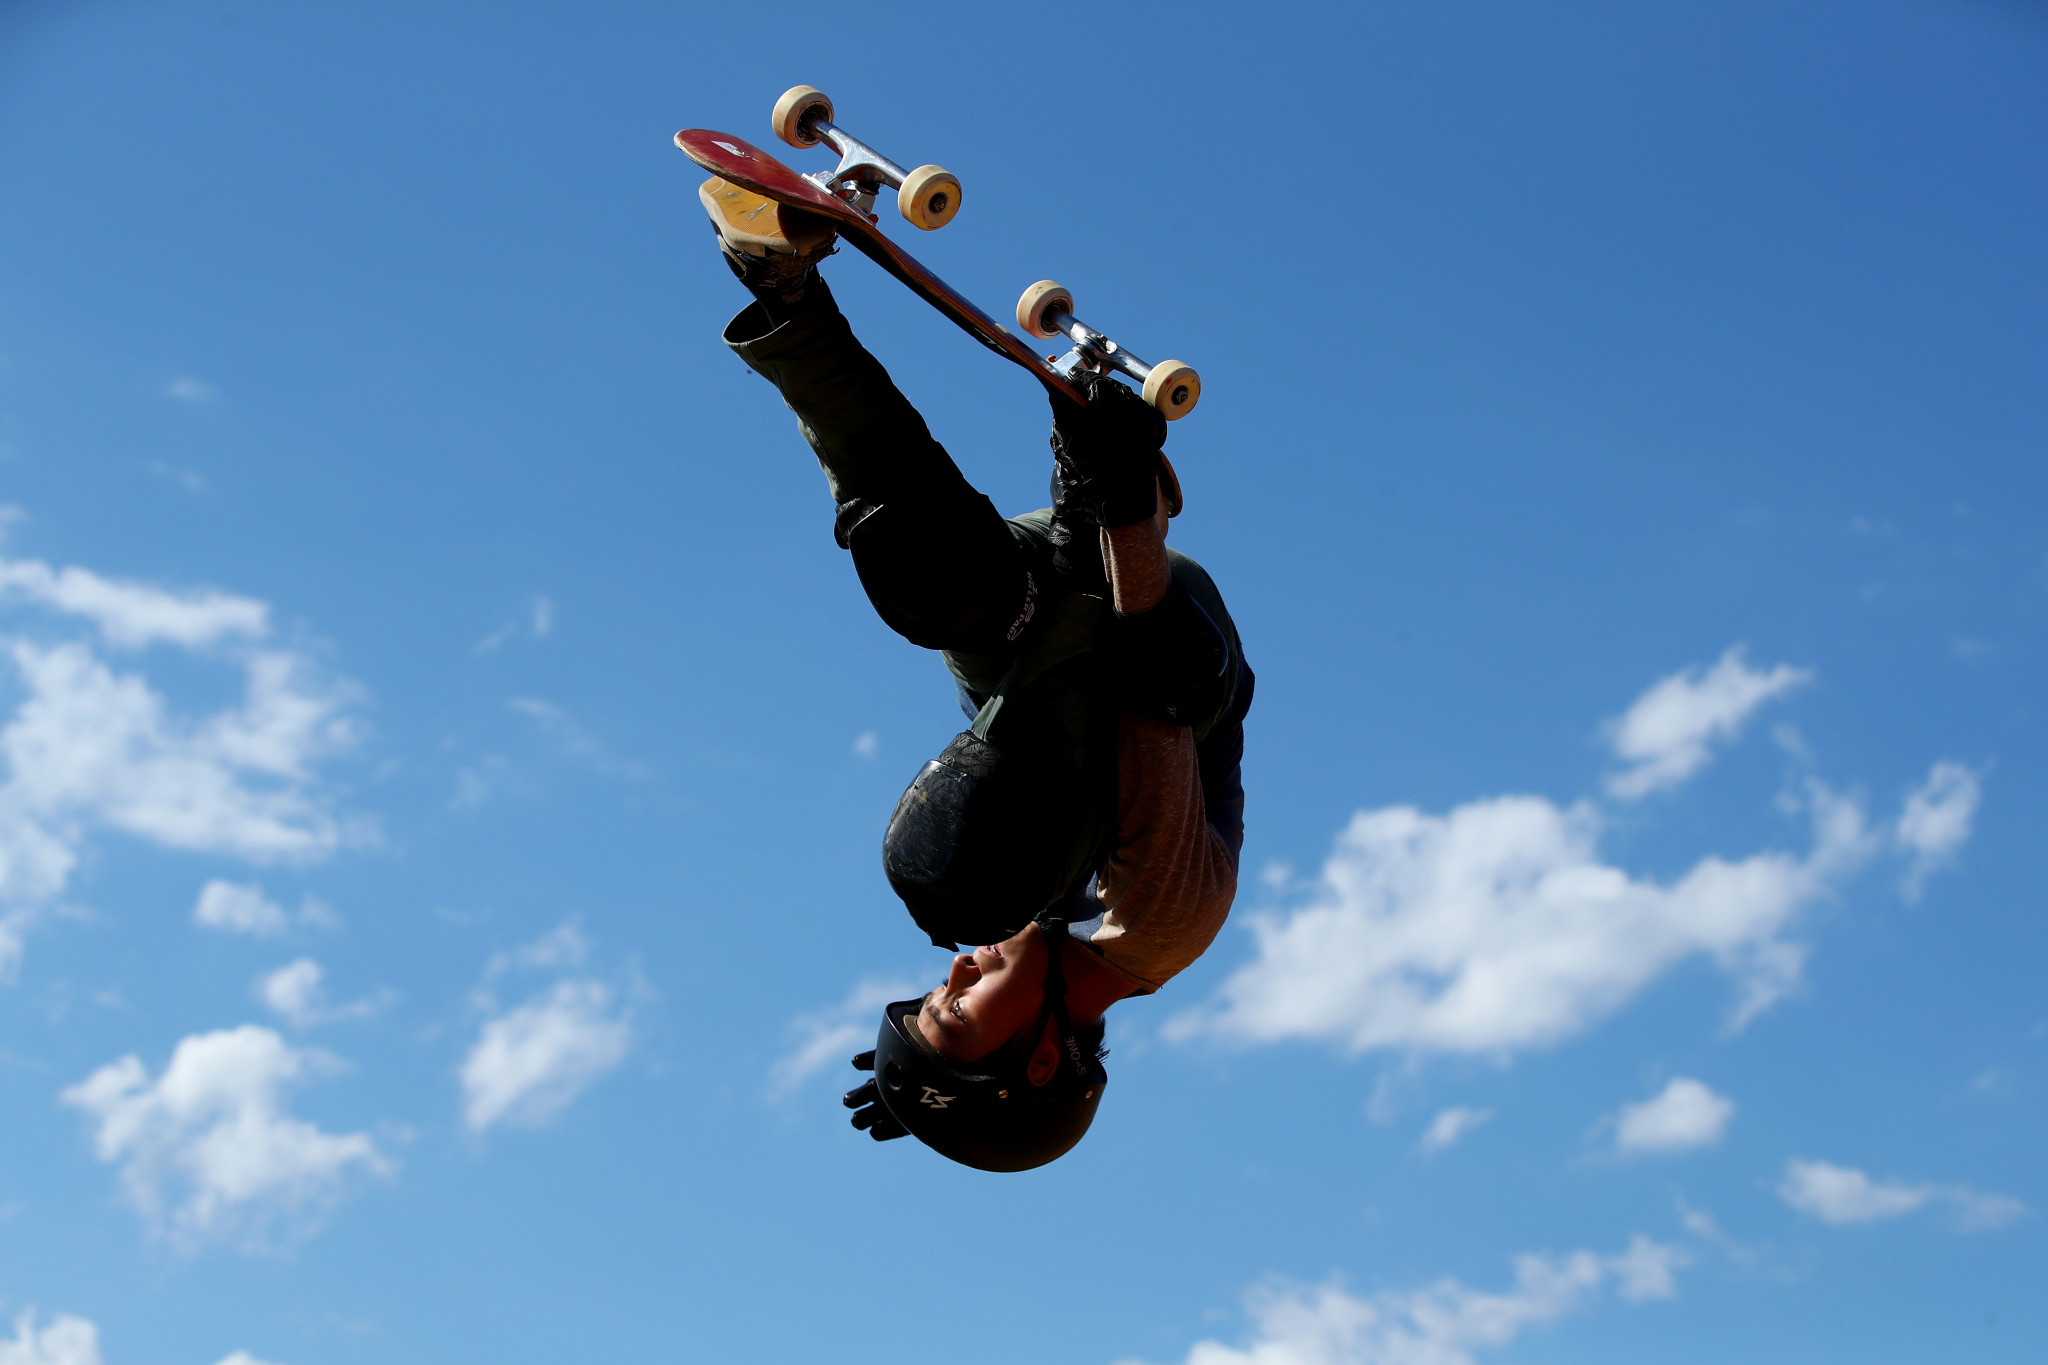 Park skateboarding will make its Olympic debut at Tokyo 2020 ©Getty Images